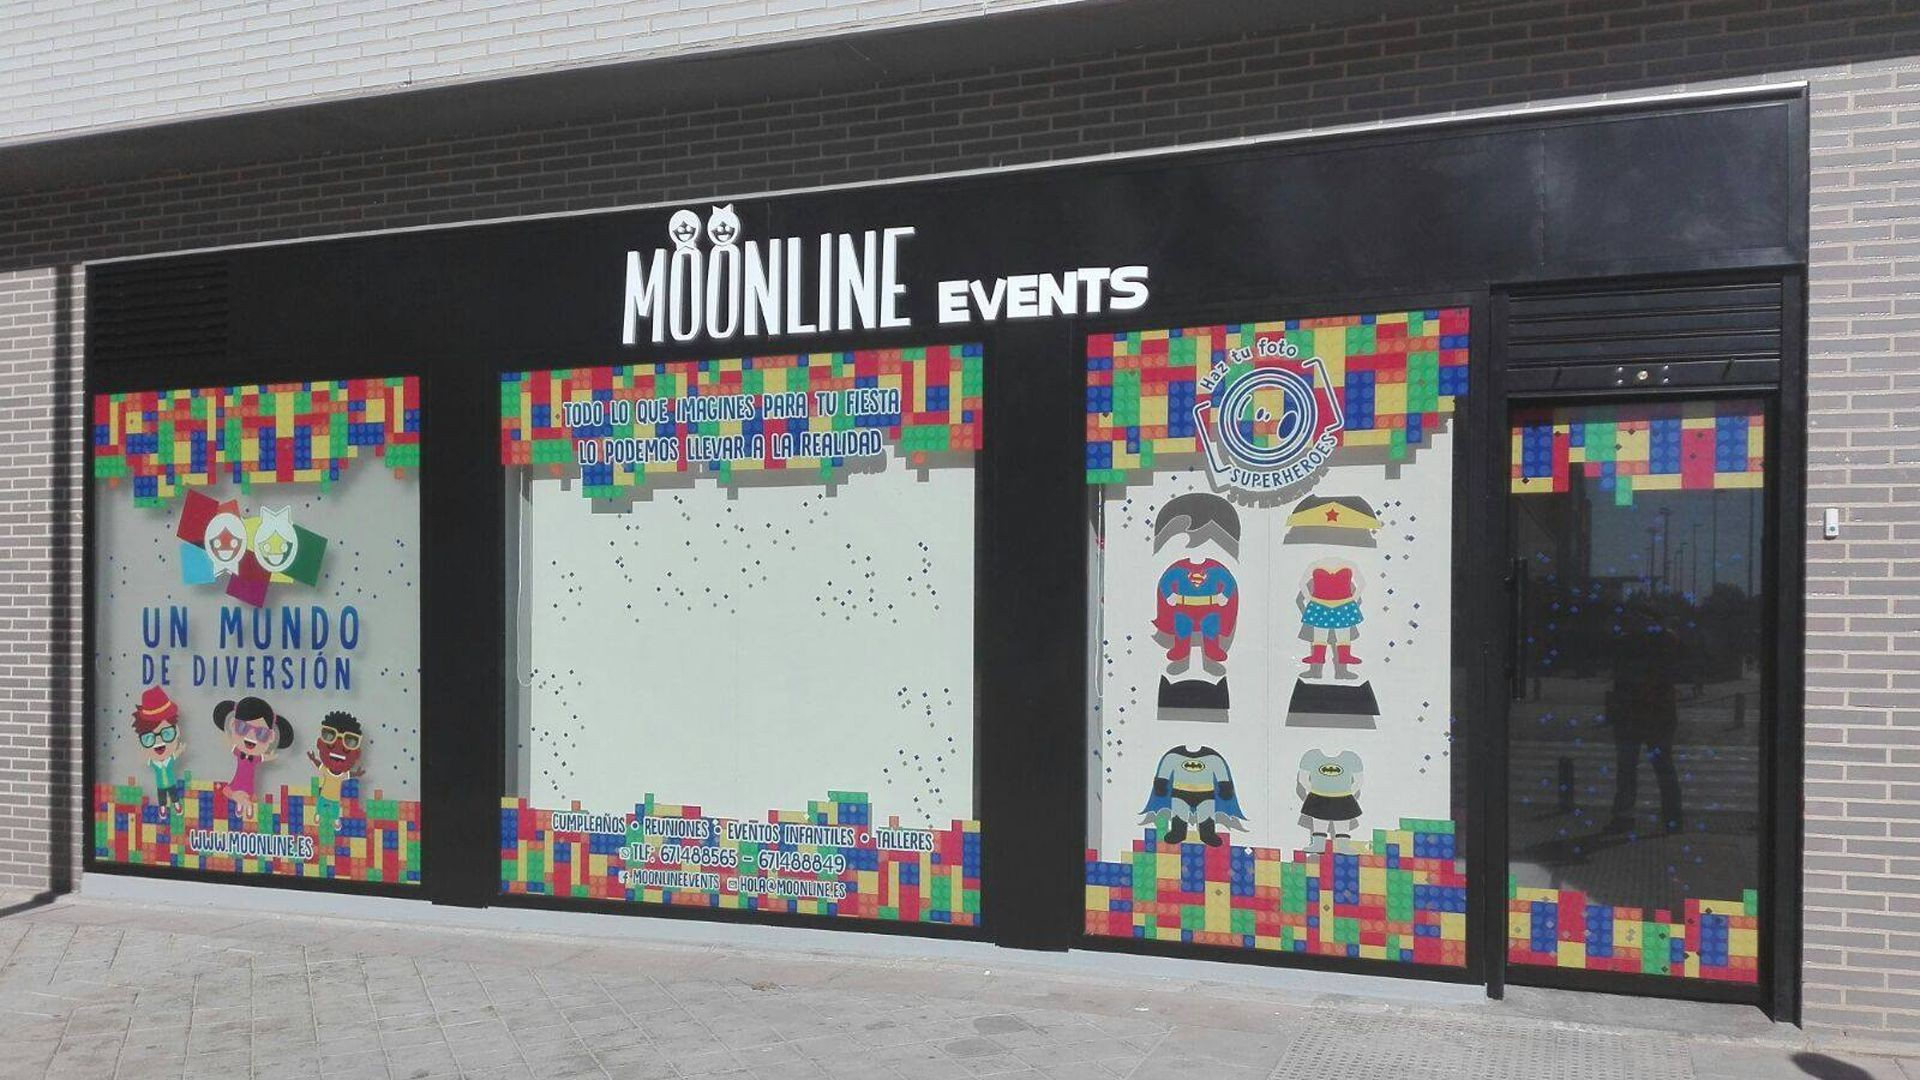 Moonline Events, Local en Fuenlabrada para fiestas infantiles, fiestas privadas y eventos